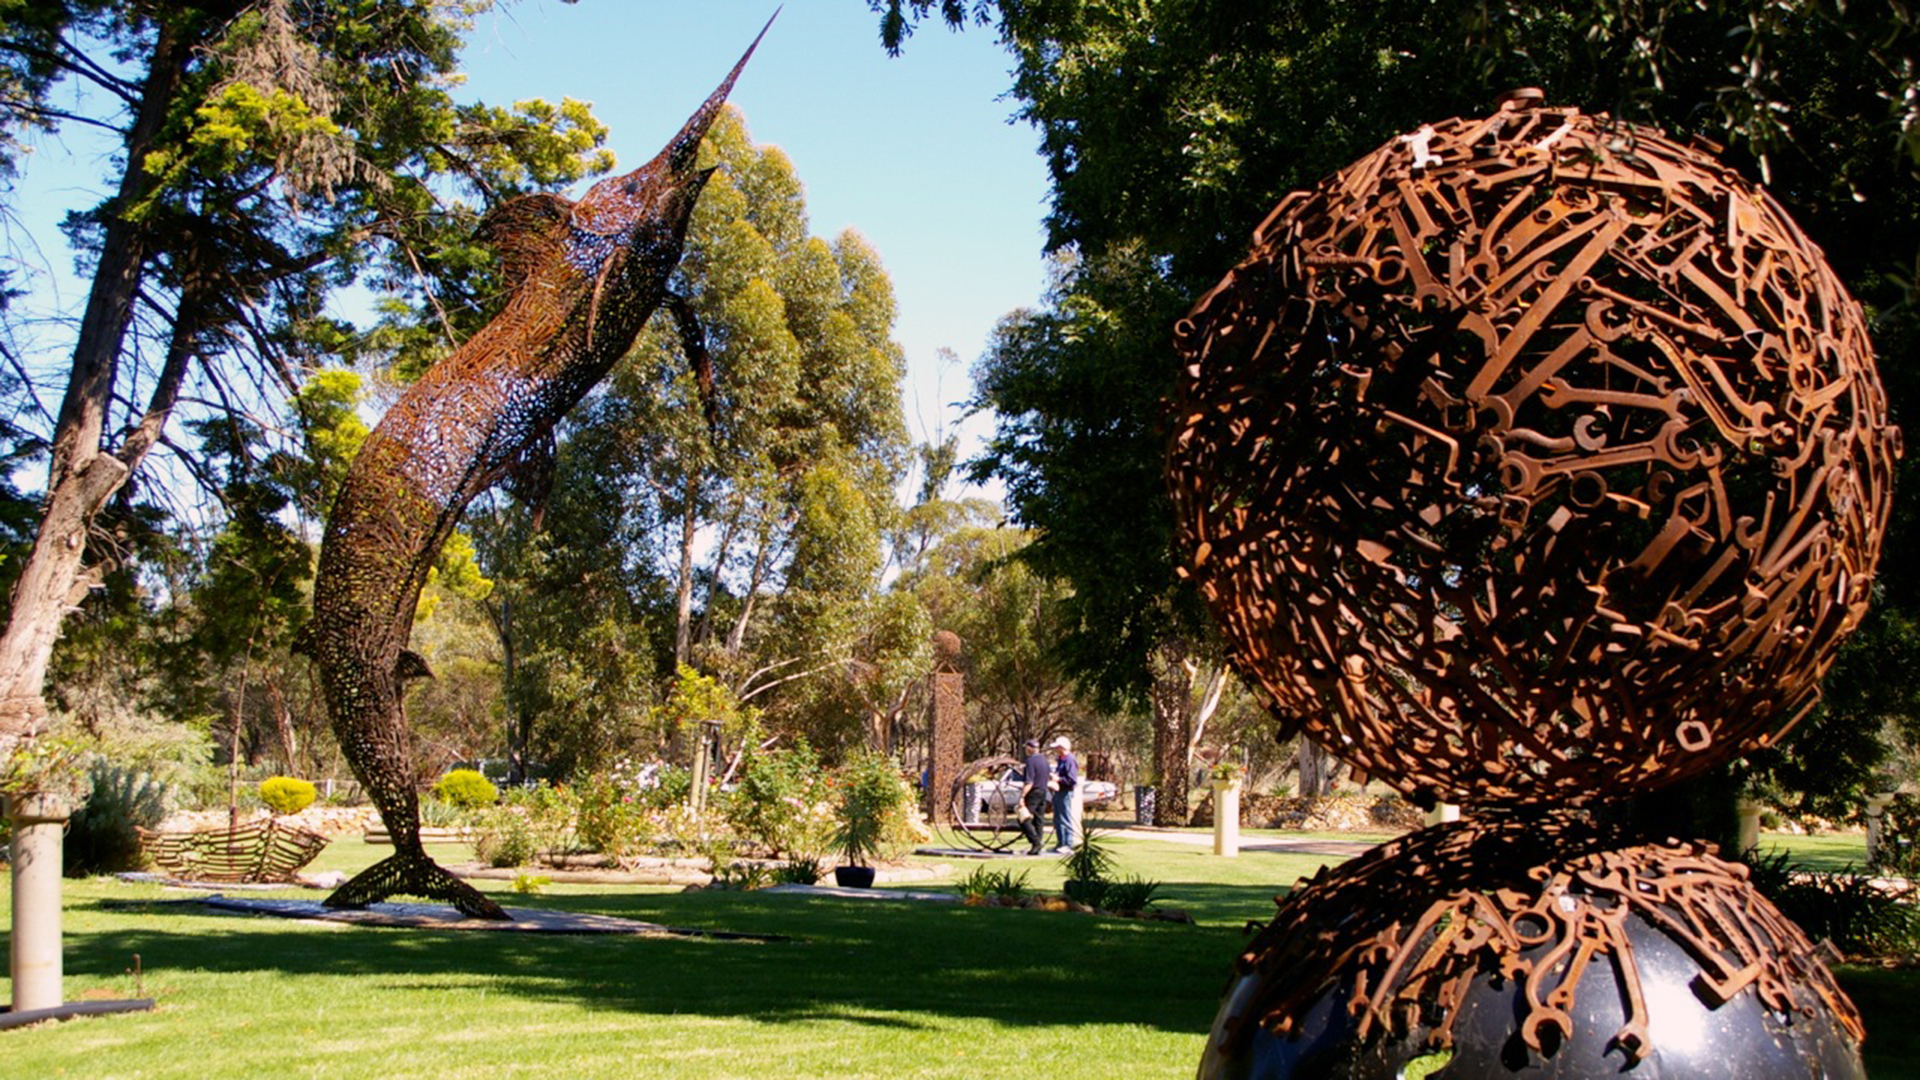 Scupltures at John Piccoli's Star Spanner Sculpture Garden